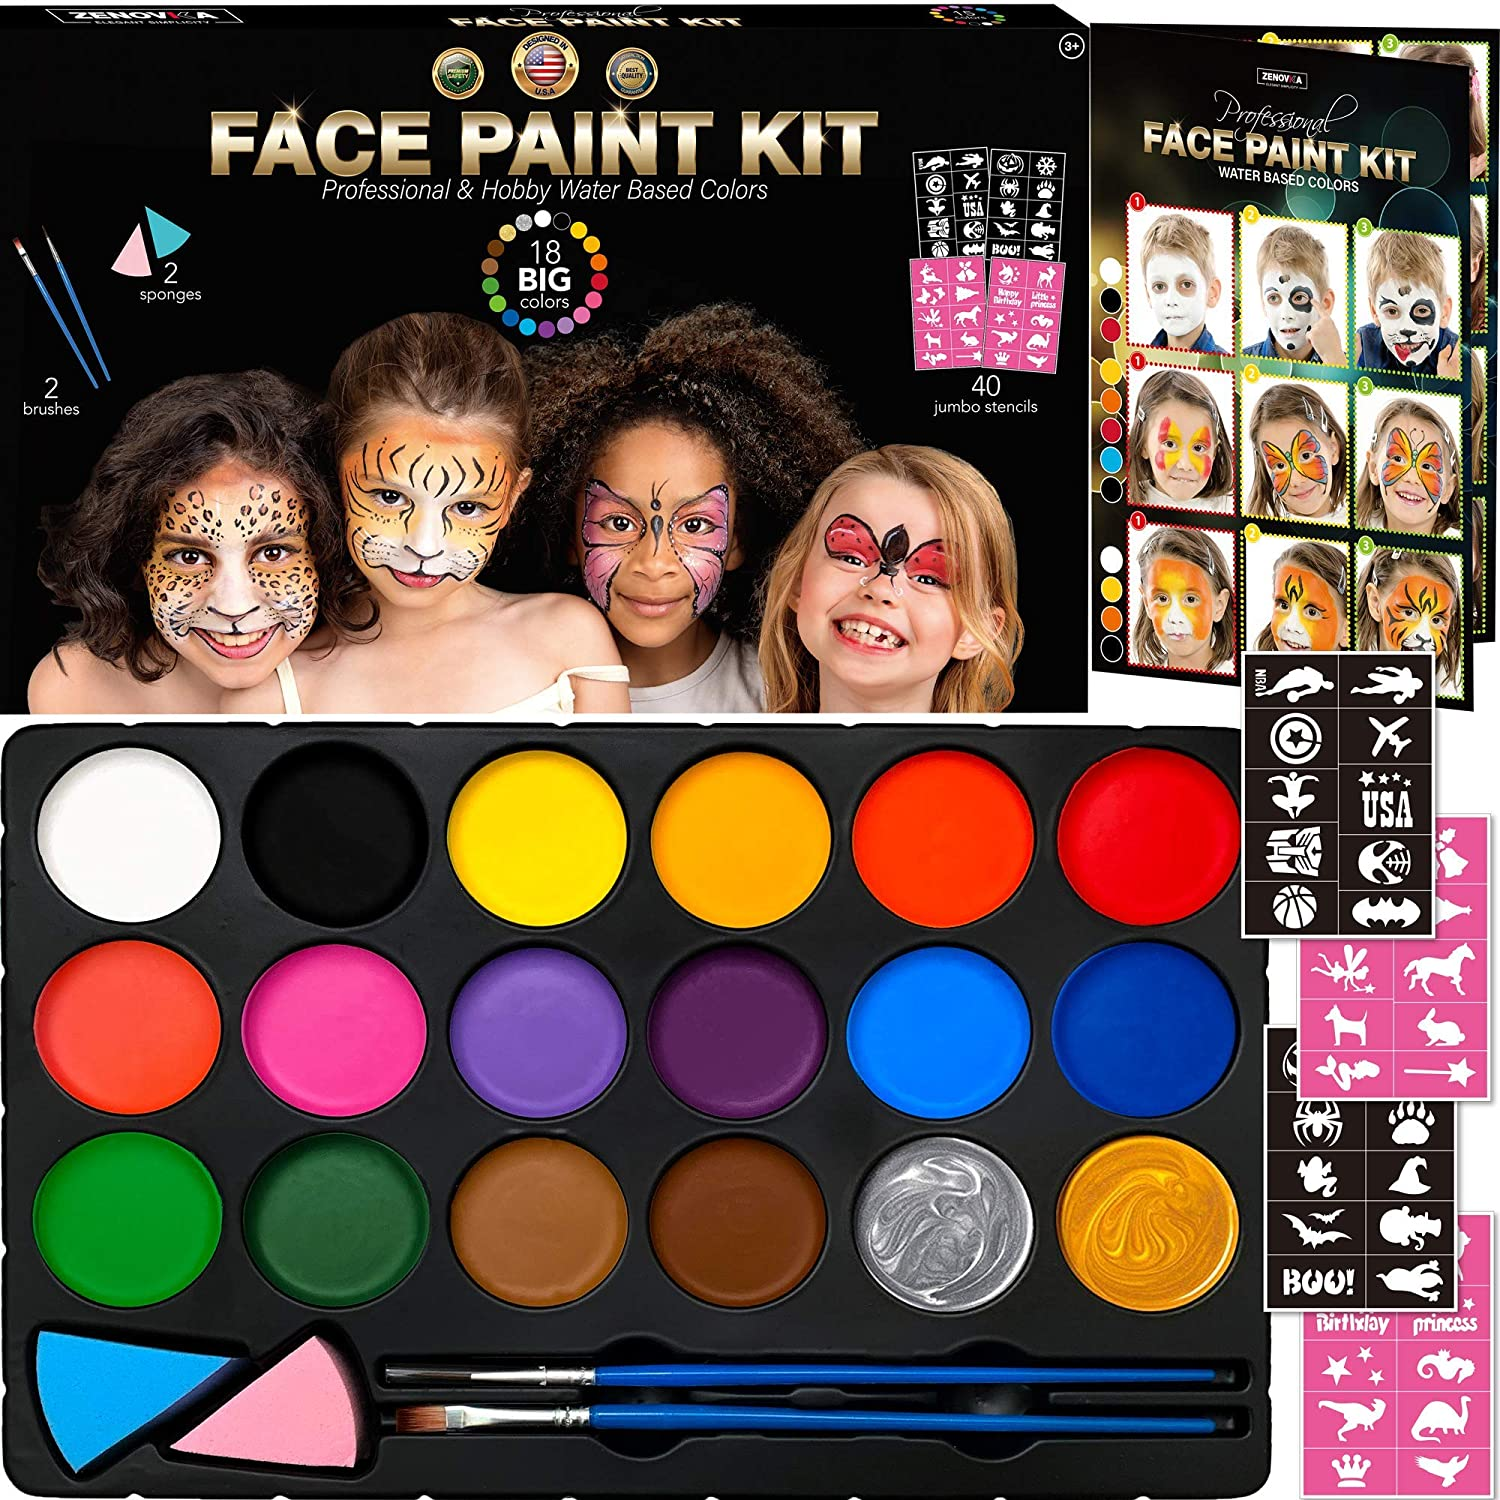 Face Paint Kit for Kids - 40 Jumbo Stencils, 18 Large Professional Water Paints, Brushes, Sponges, 2 Metallic Color - Safe Facepainting for Sensitive Skin, Halloween Makeup Supplies + Face Paint Book